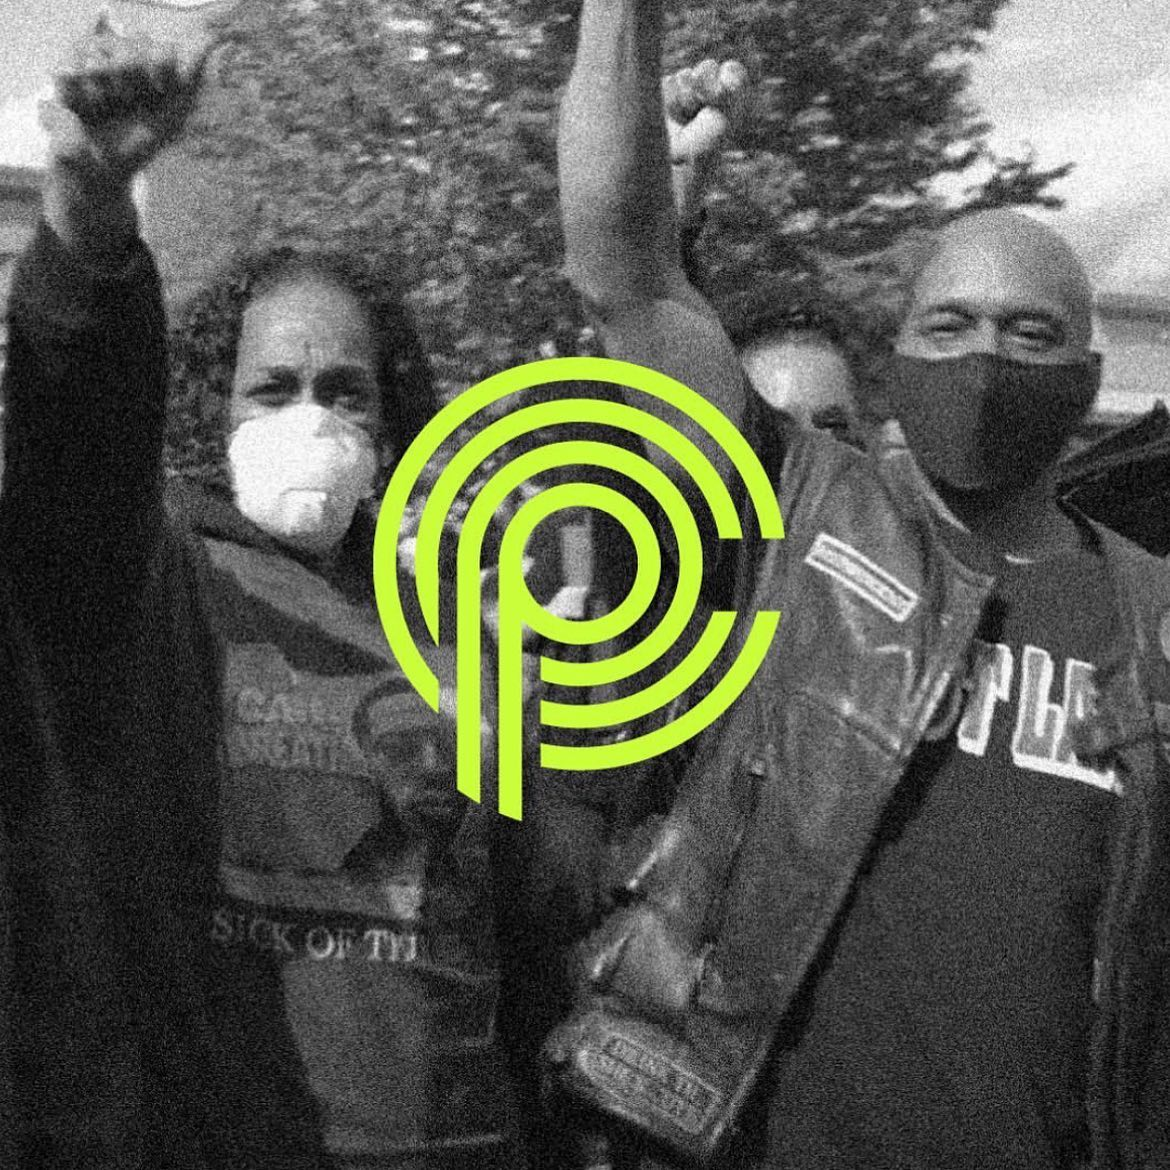 Black and white photo of masked people with their fists raised. CP logo overlaid on top of the photo